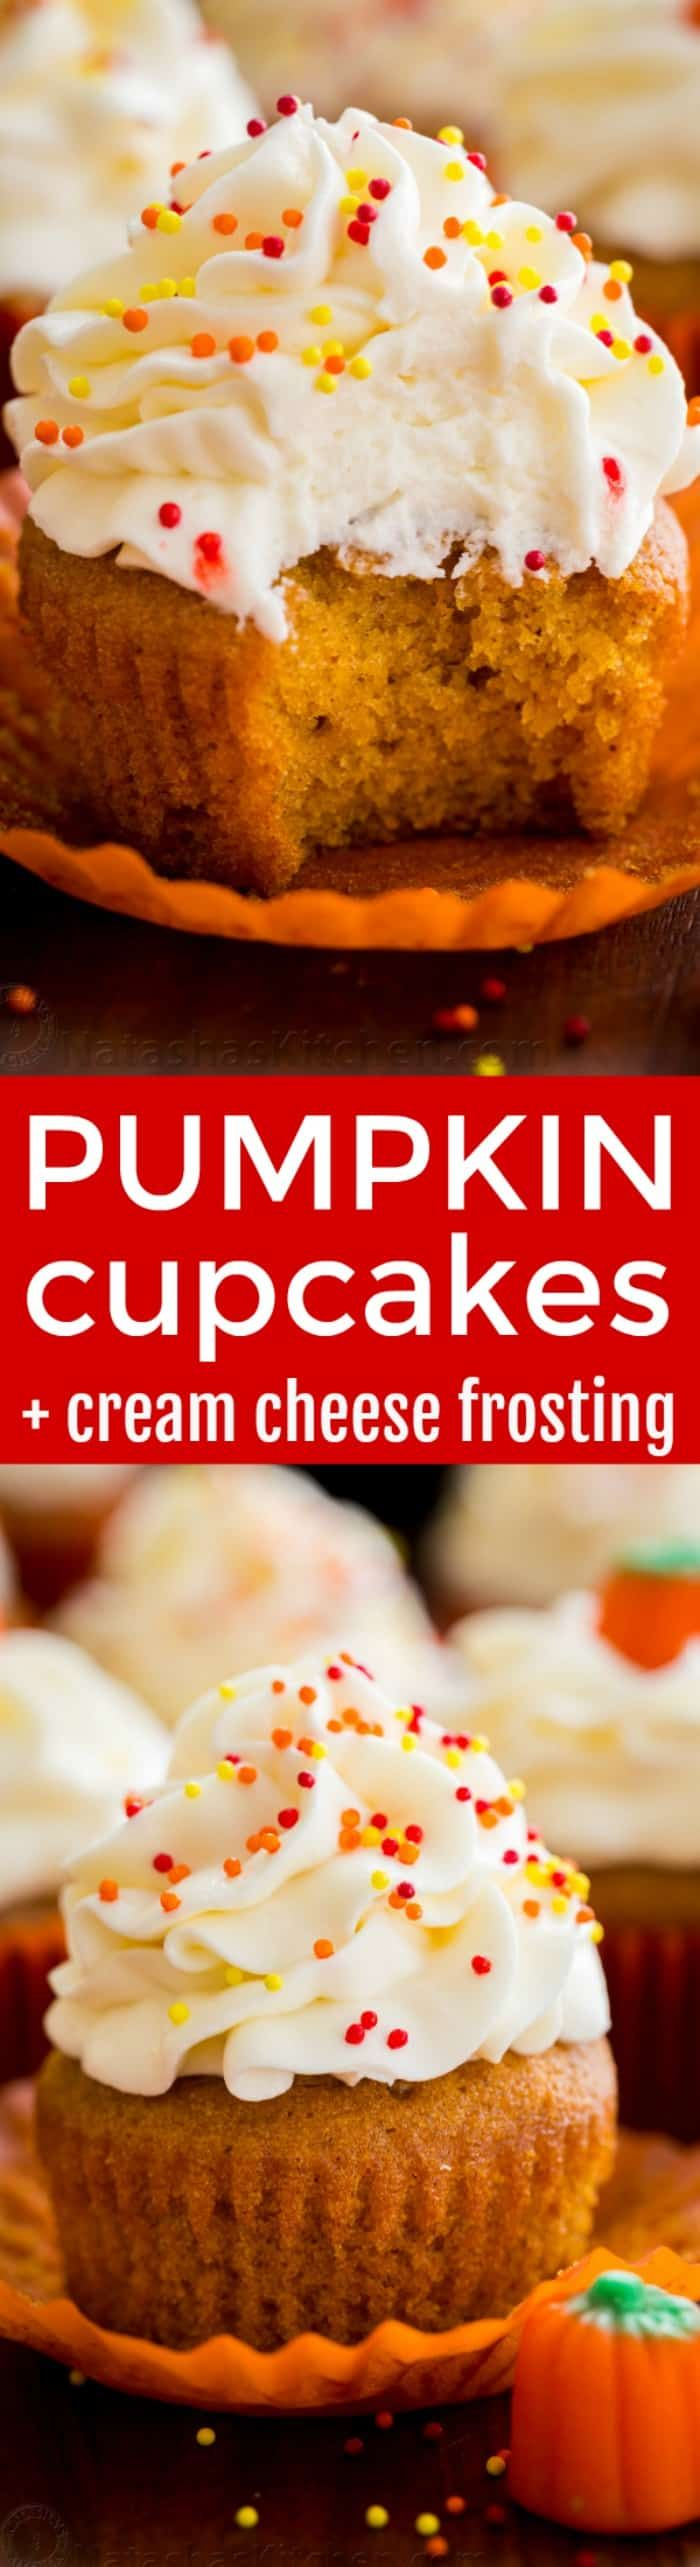 The only pumpkin cupcakes recipe you need! Moist, melt-in-your mouth soft pumpkin cupcakes. Cream cheese frosting is easy and tastes like marshmallow cream #pumpkincupcakes | natashaskitchen.com